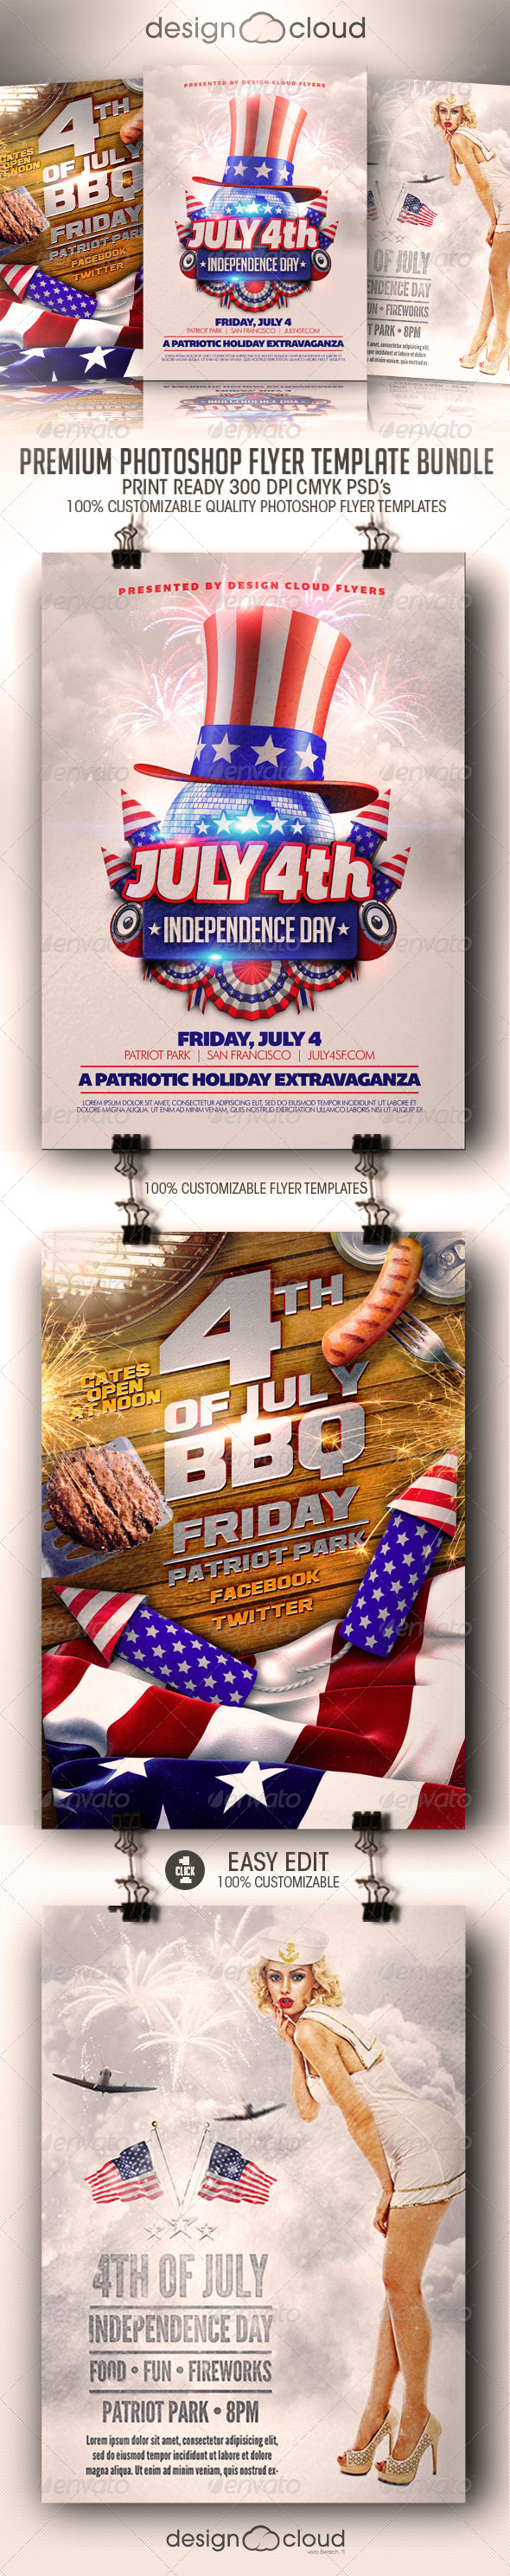 July 4th Independence Day Flyer Template Bundle - Events Flyers